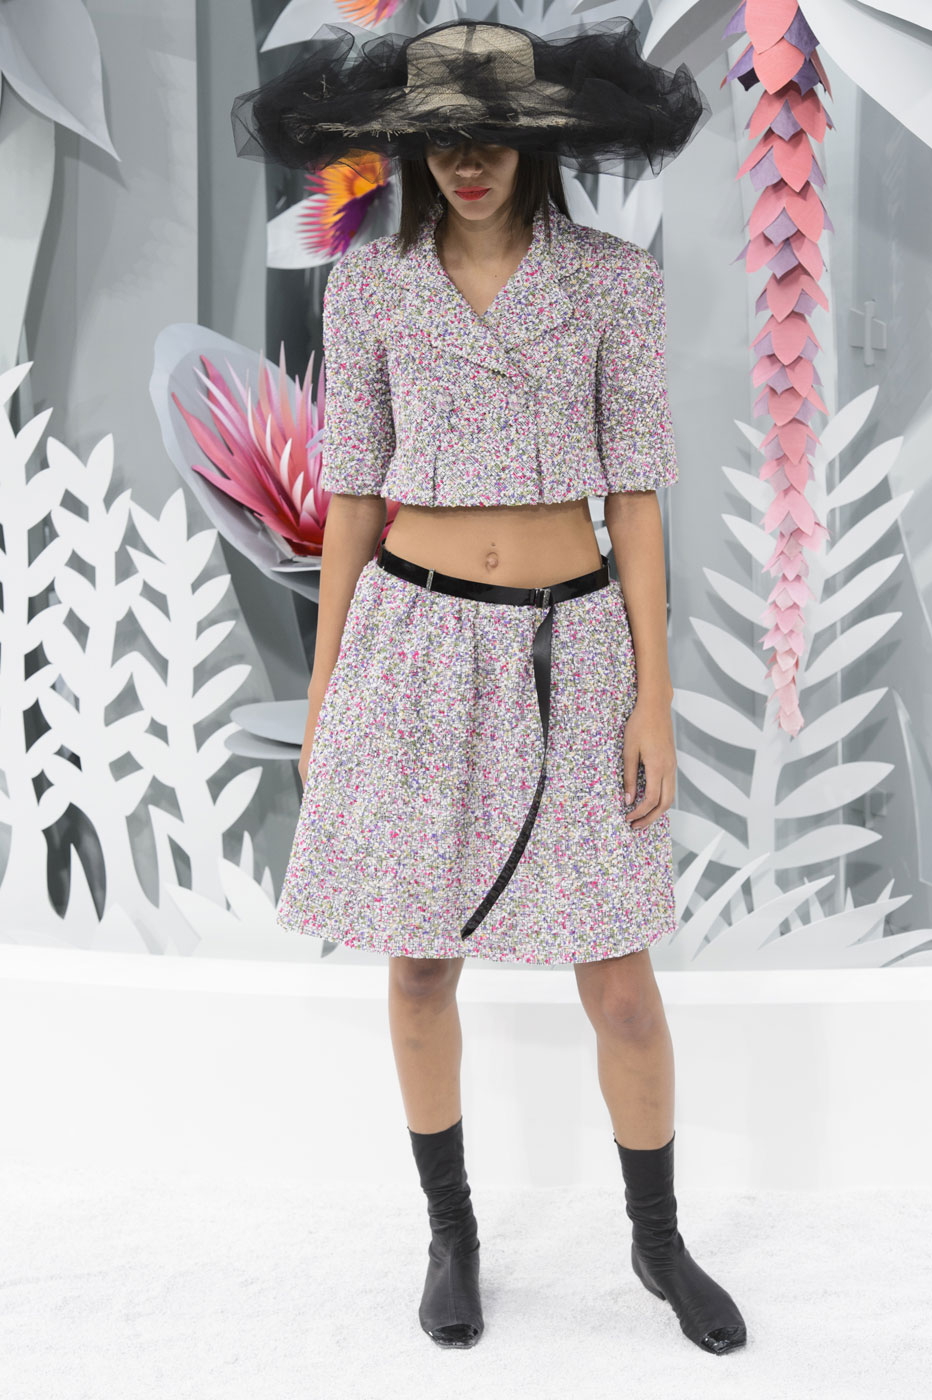 Chanel-fashion-runway-show-haute-couture-paris-spring-summer-2015-the-impression-038